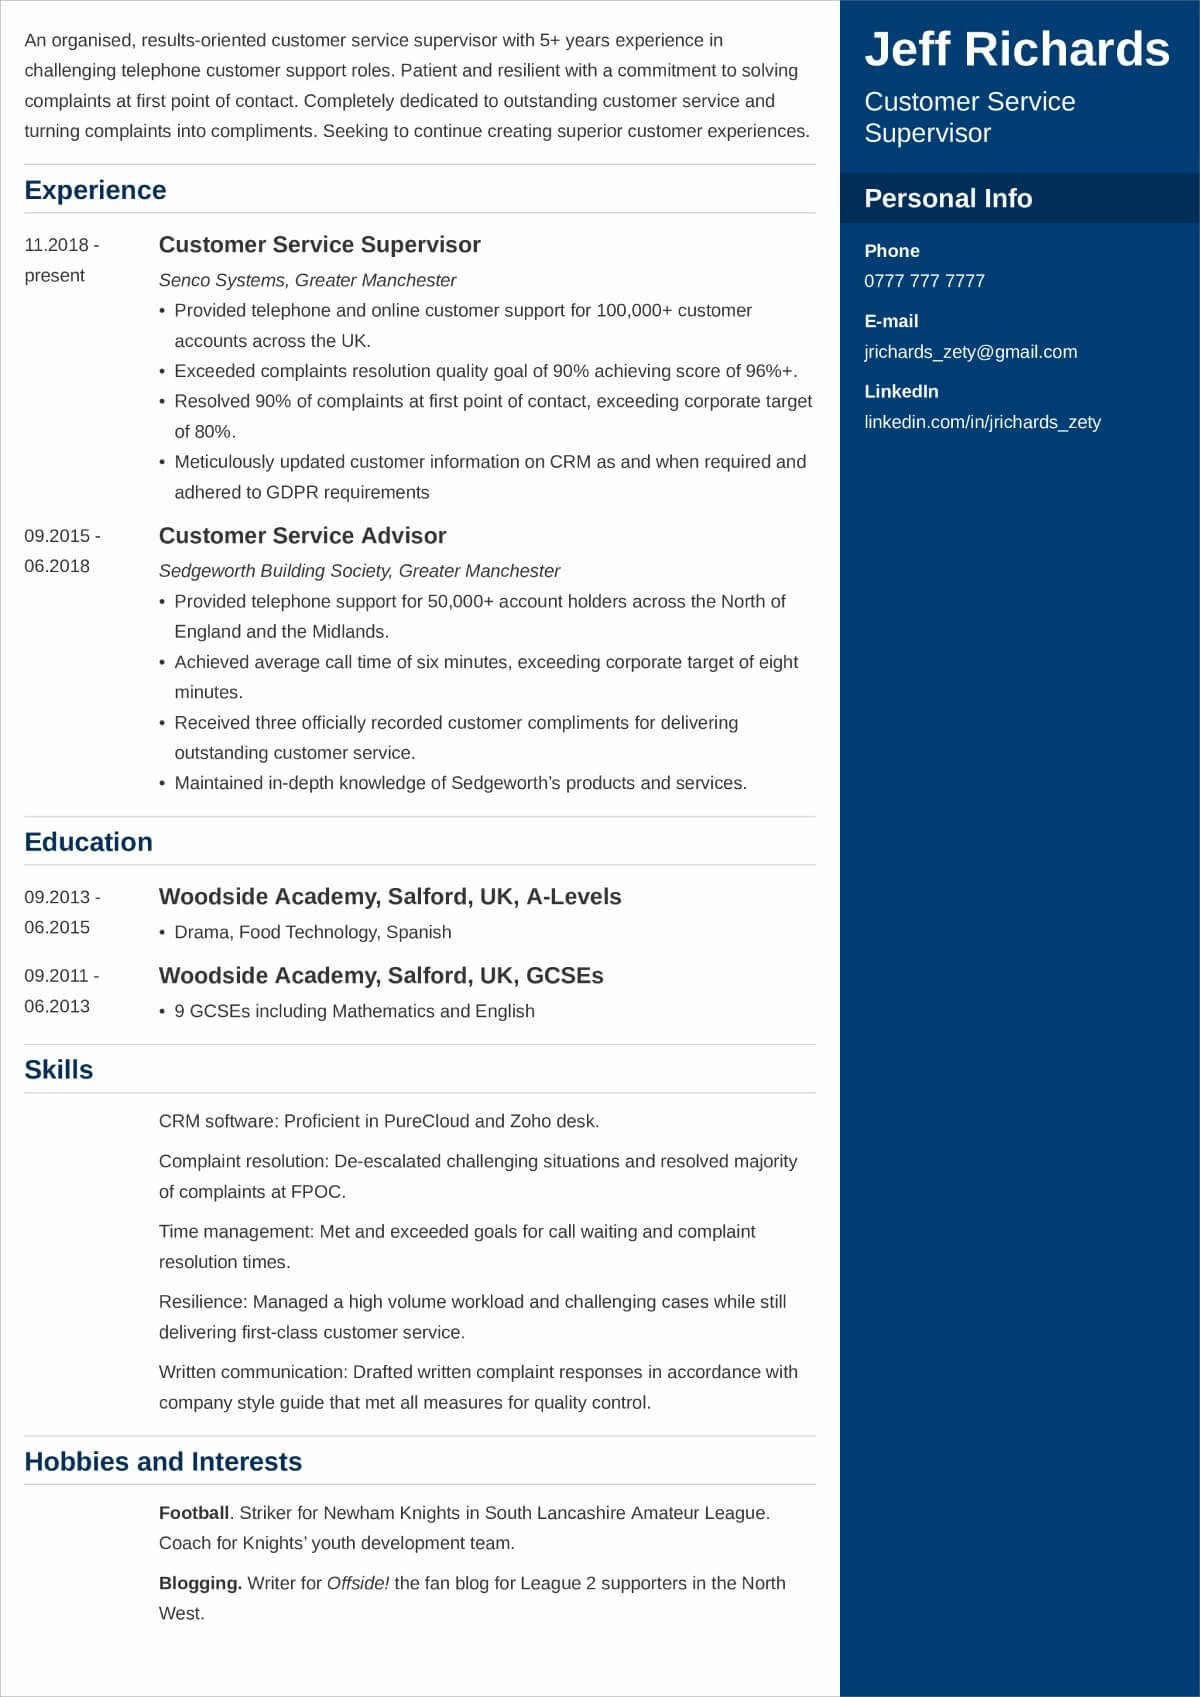 best hobbies and interests to put on cv examples for good resume behavioral health Resume Hobbies Good For Resume